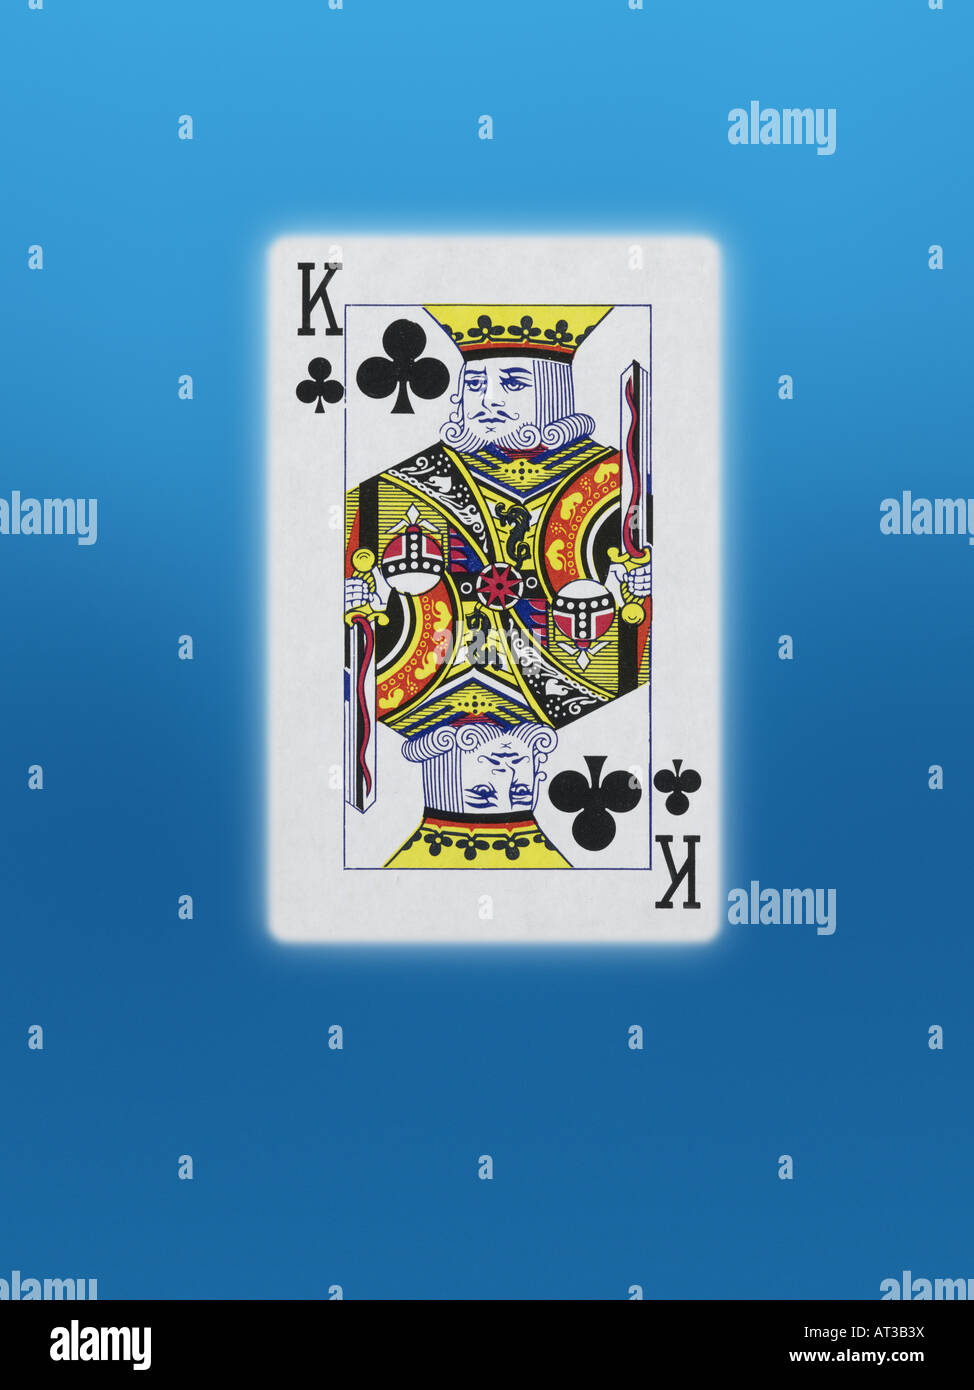 A king of clubs playing card - Stock Image